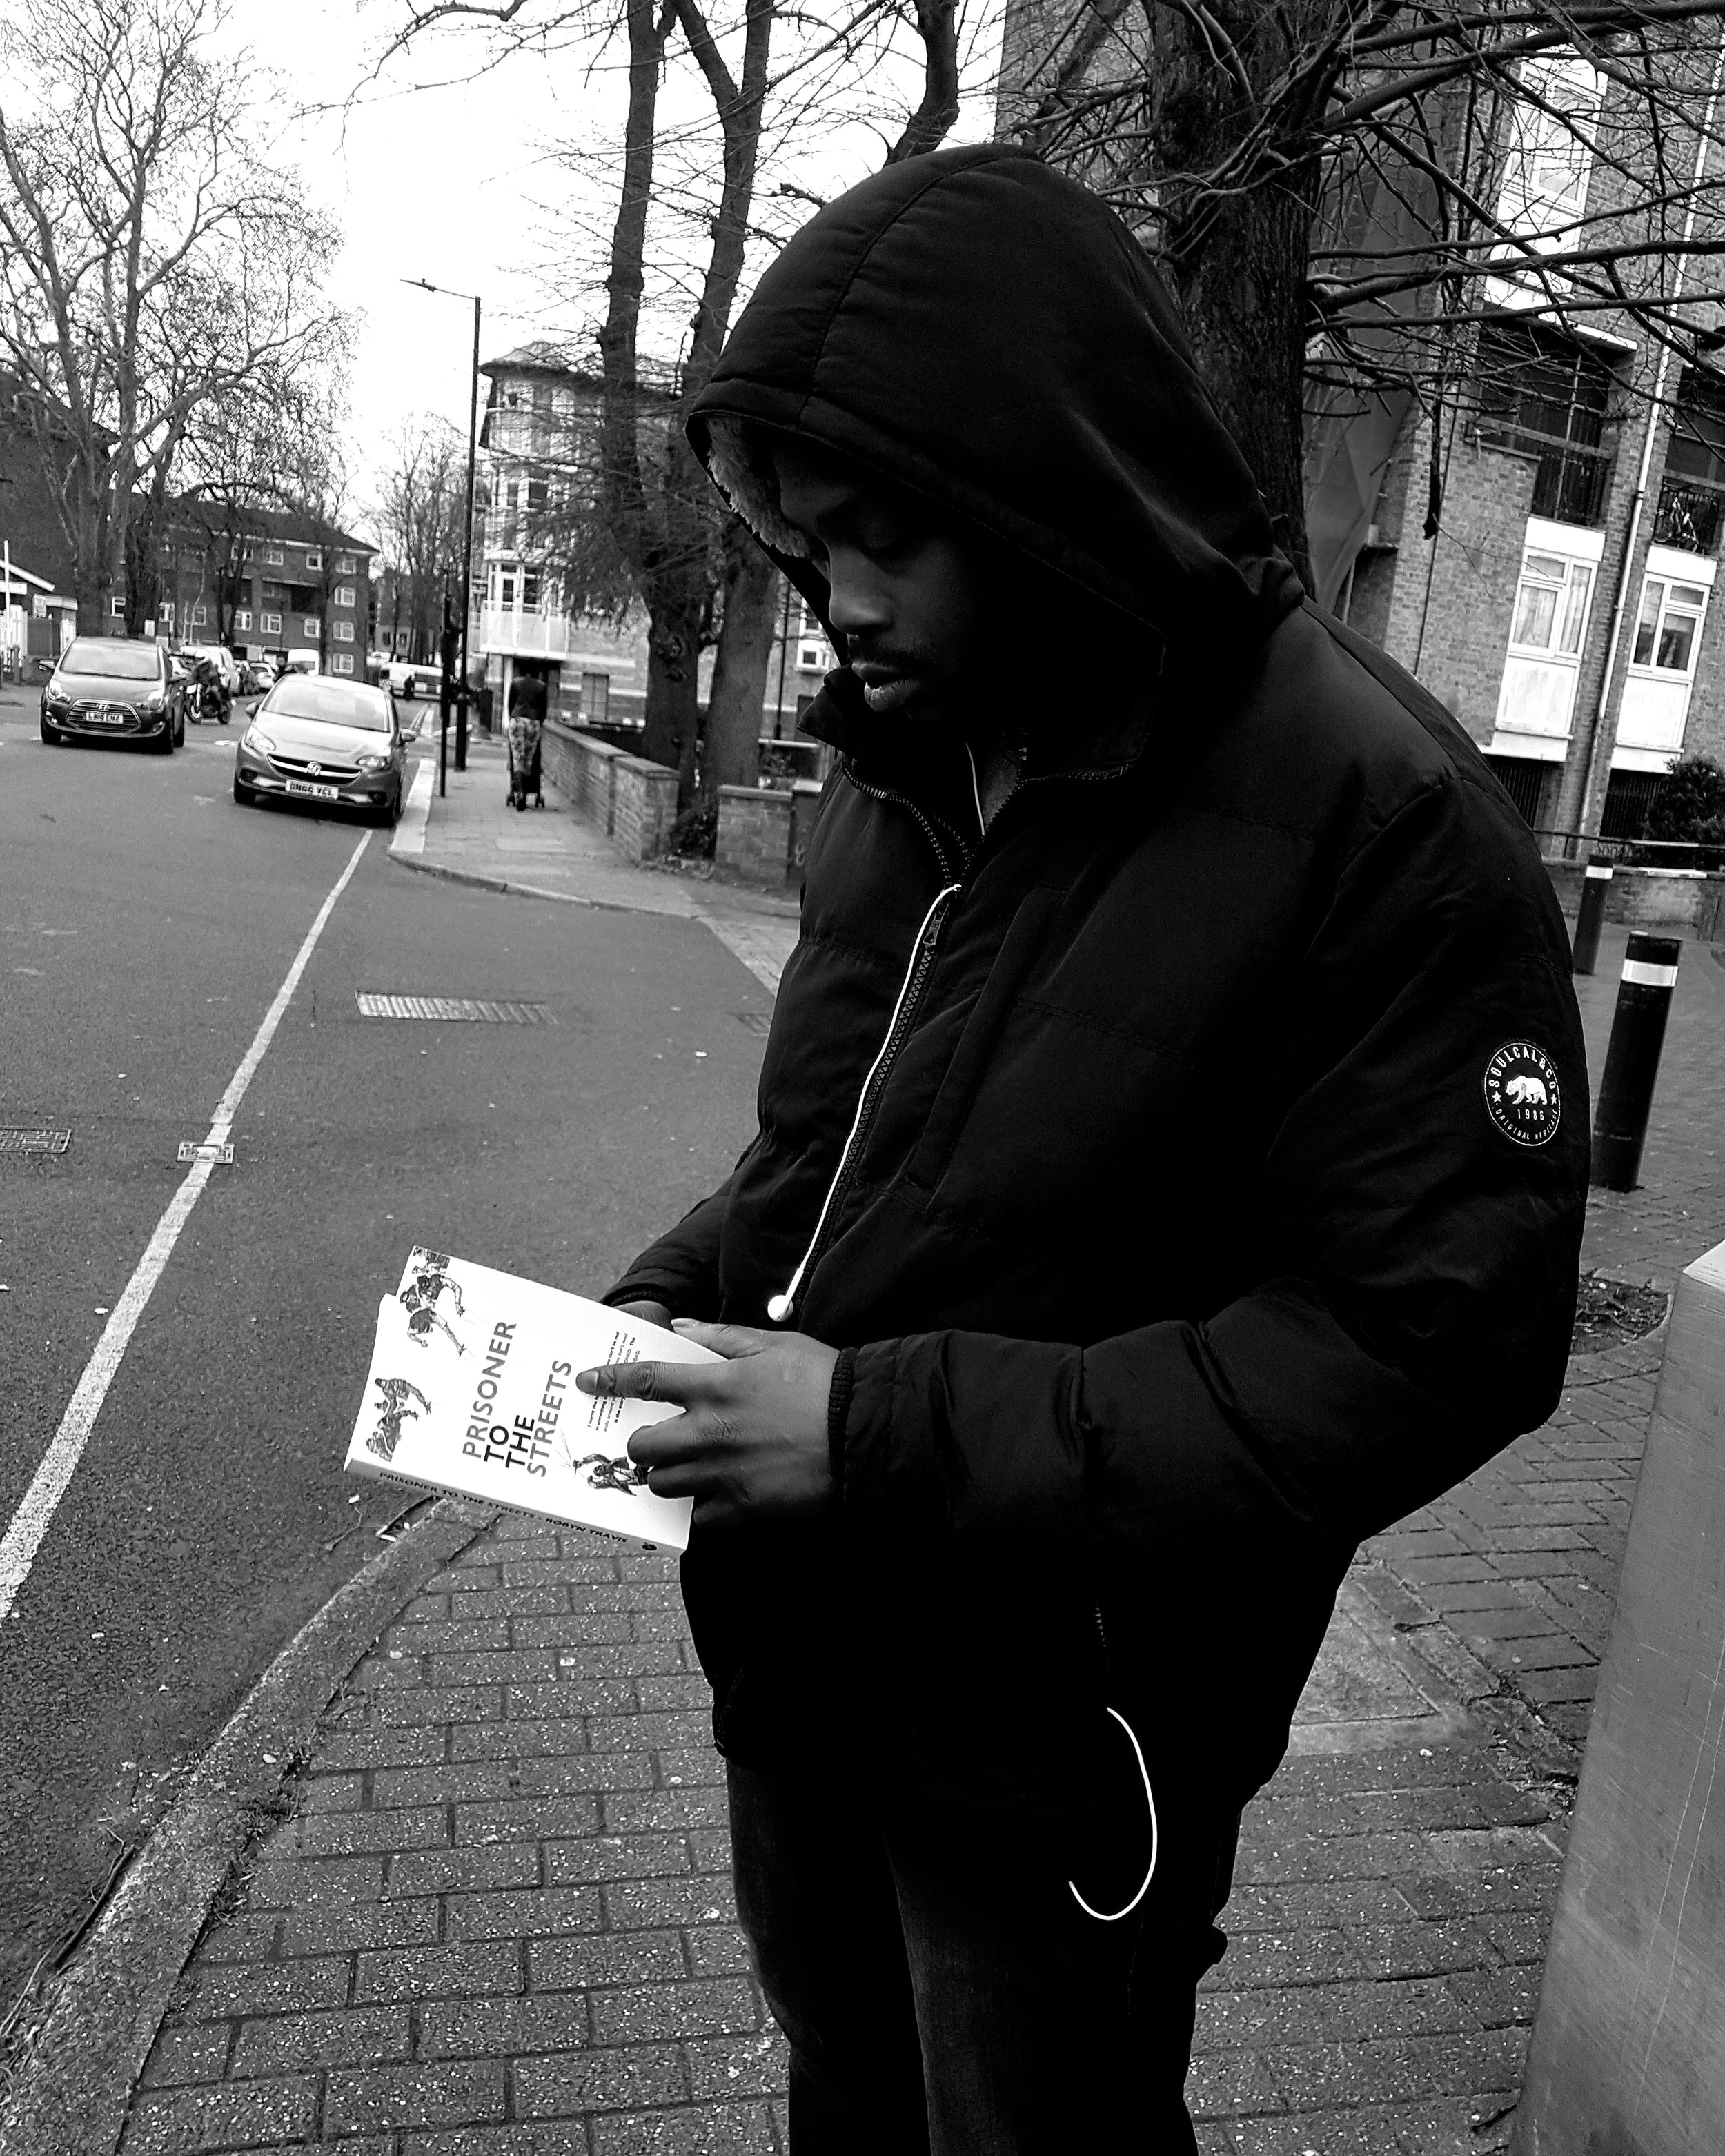 """About Us - """"Placing 100 books each month into the hands of young people"""" - Malik SankaraInitially starting in 2017, founder Malik Sankara purchased 100 books from author Robyn Travis, entitled 'Prisoner to the streets' with the promise of delivering them to young people across London estates for free. After fulfilling this goal, Malik saw the opportunity for his promise to become a continuous commitment, hence the birth of Block Books."""